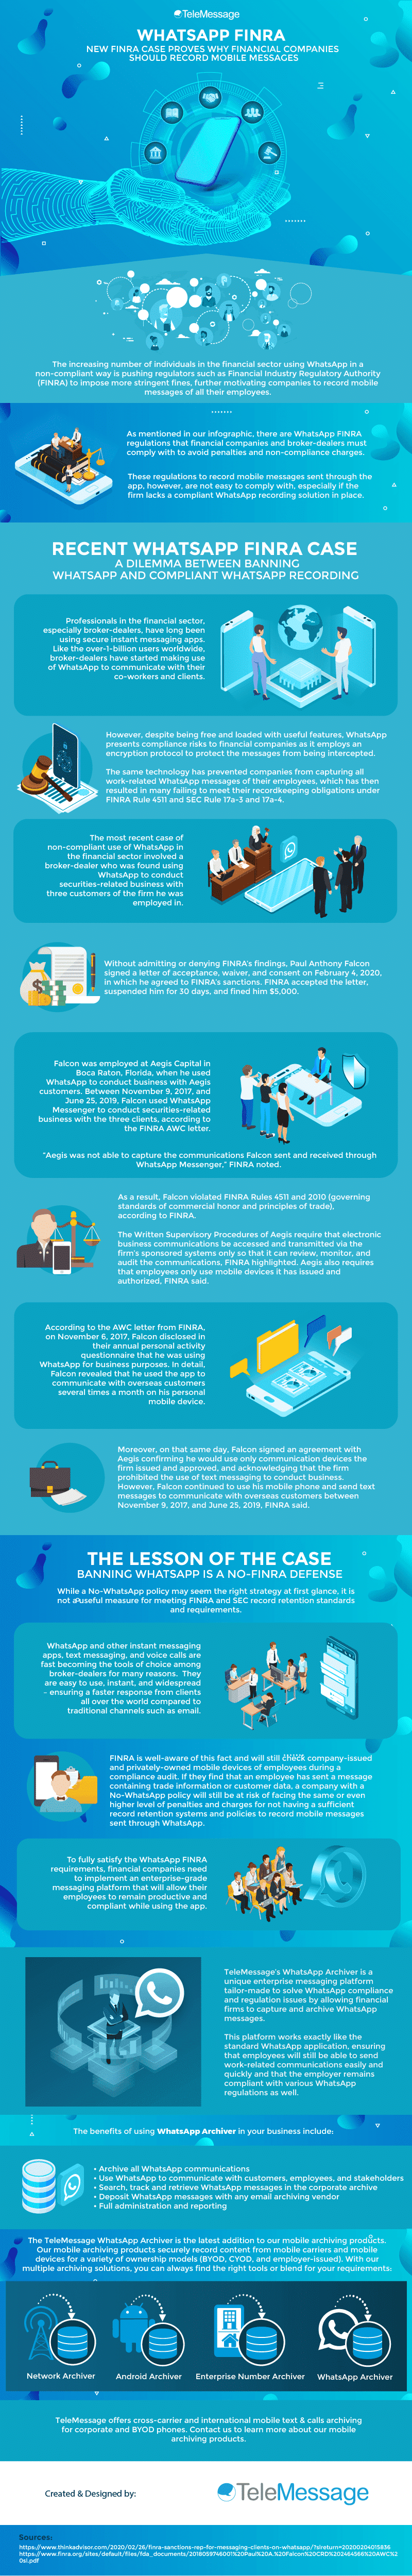 WhatsApp FINRA – New FINRA Case Proves Why Financial Companies Should Record Mobile Messages #infographic